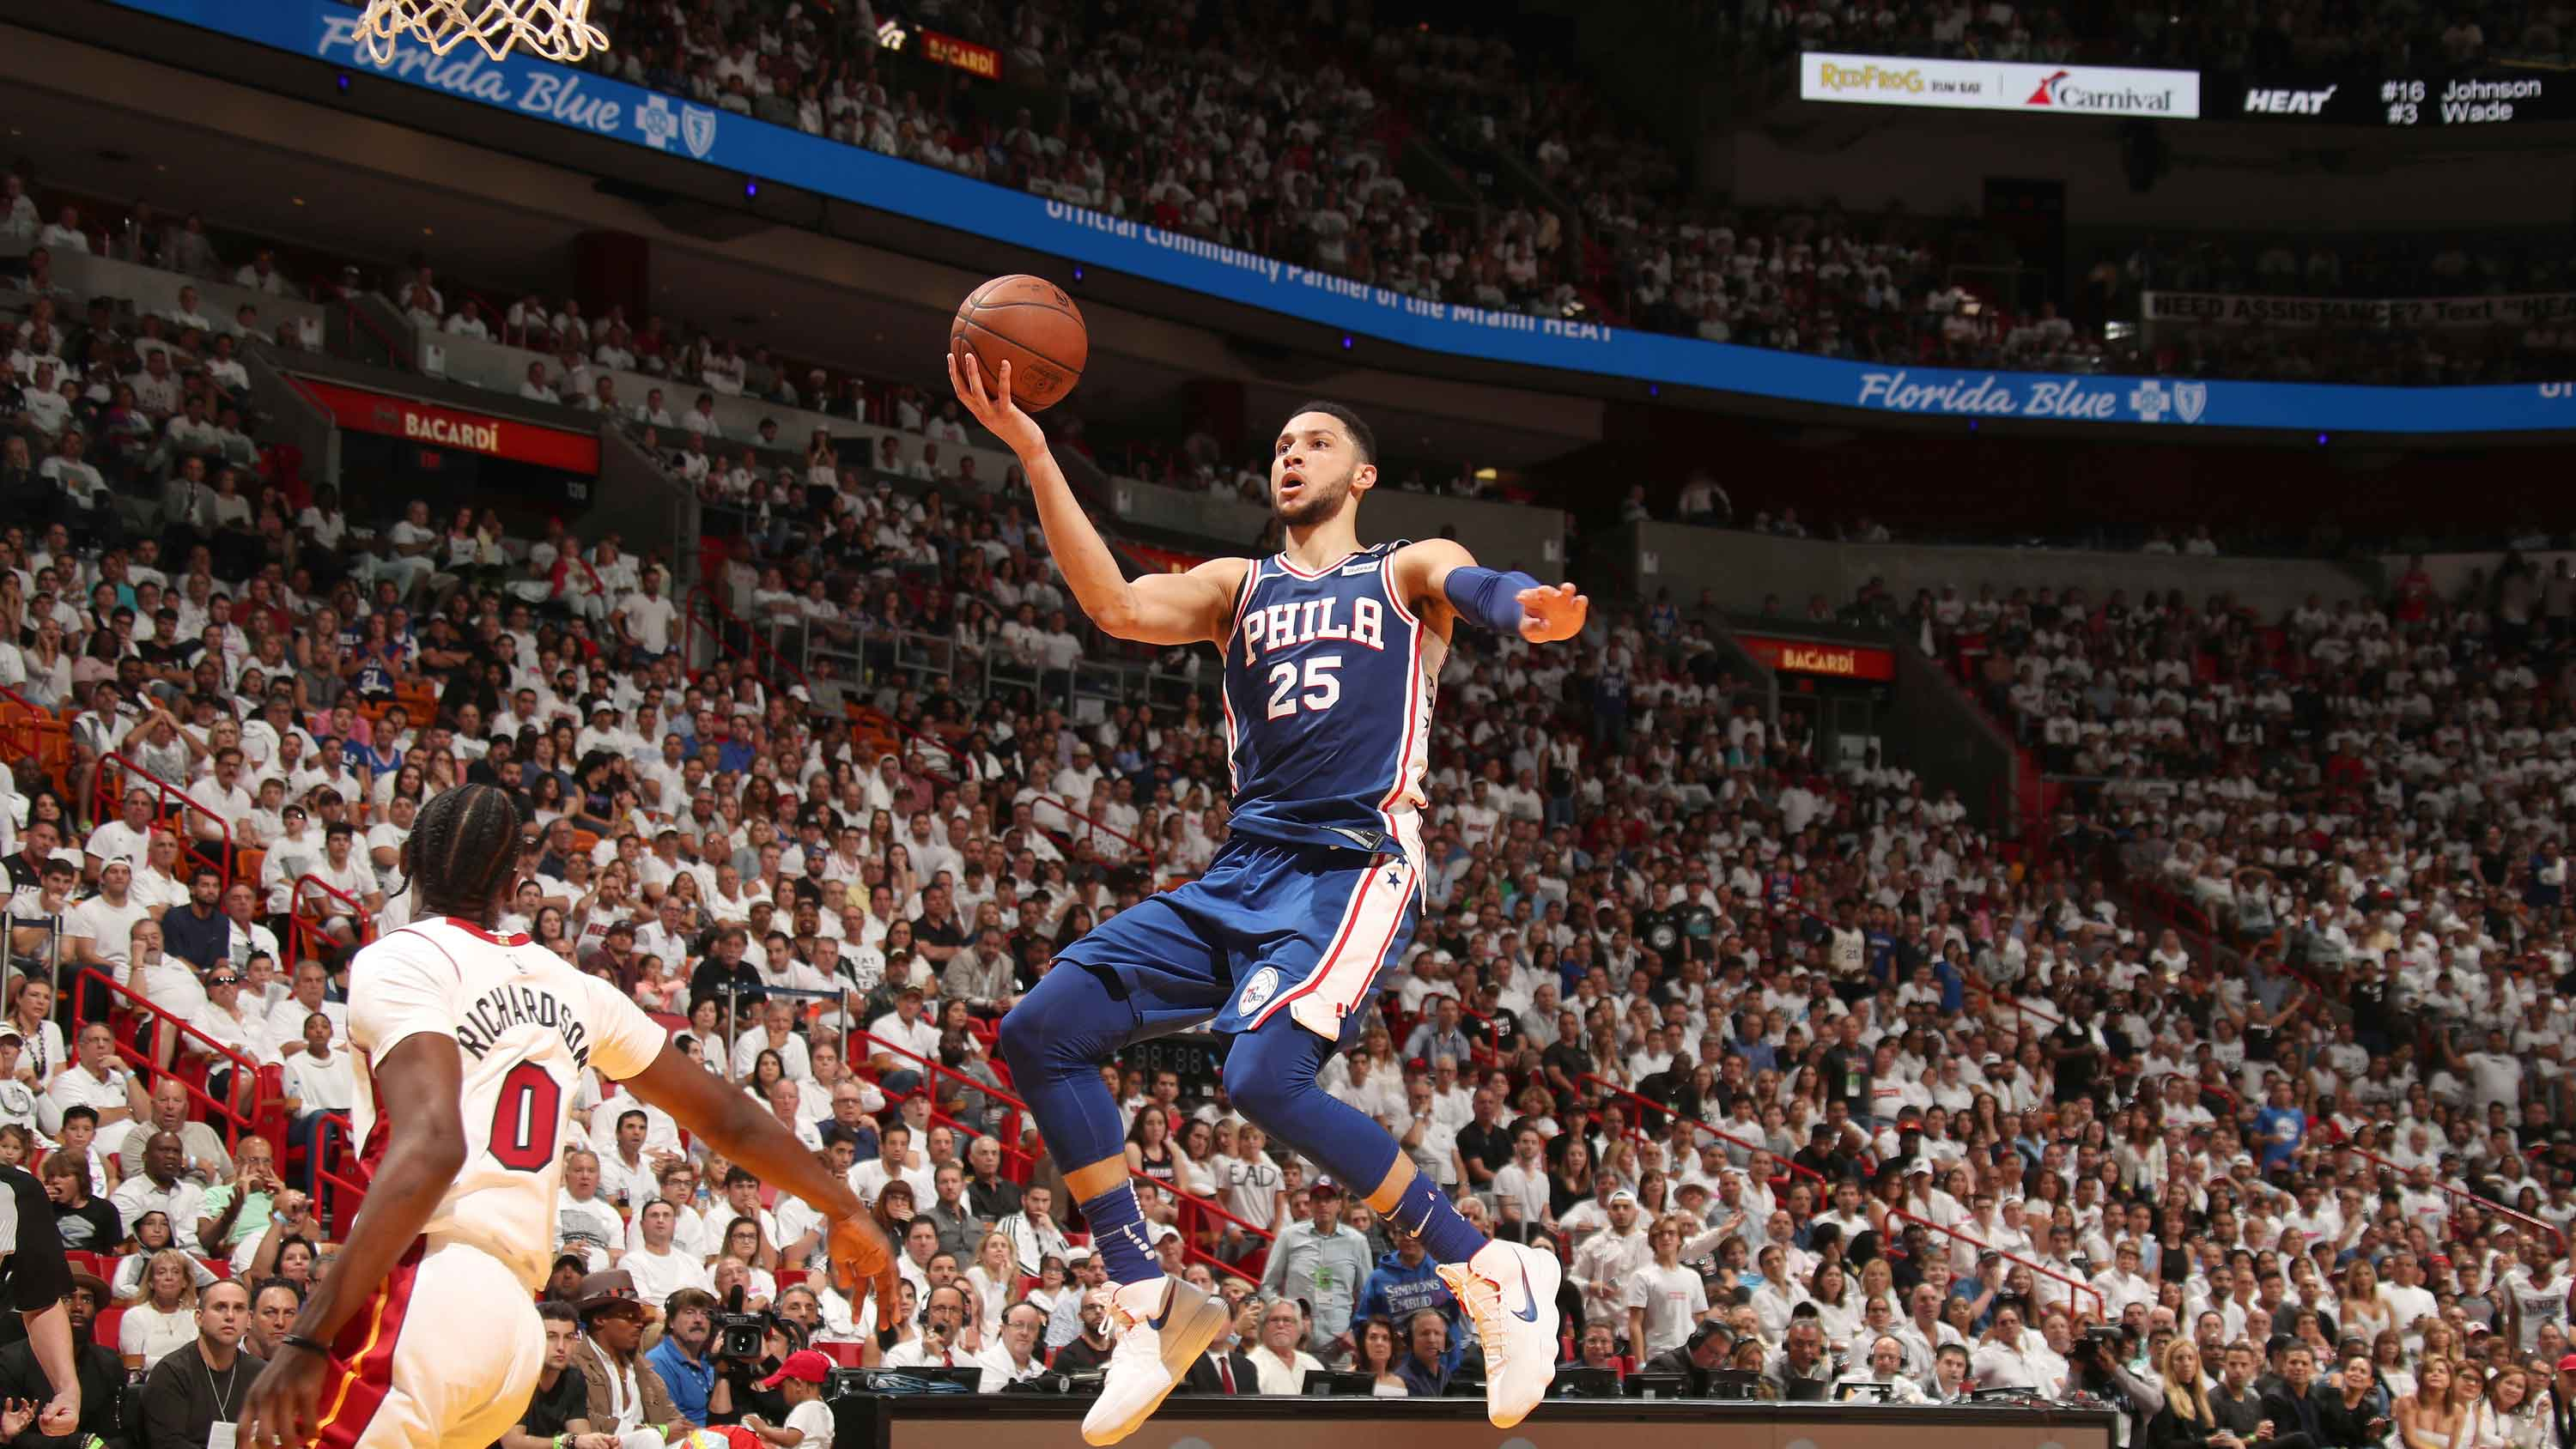 GAME 4 RECAP: Sixers 106, Heat 102